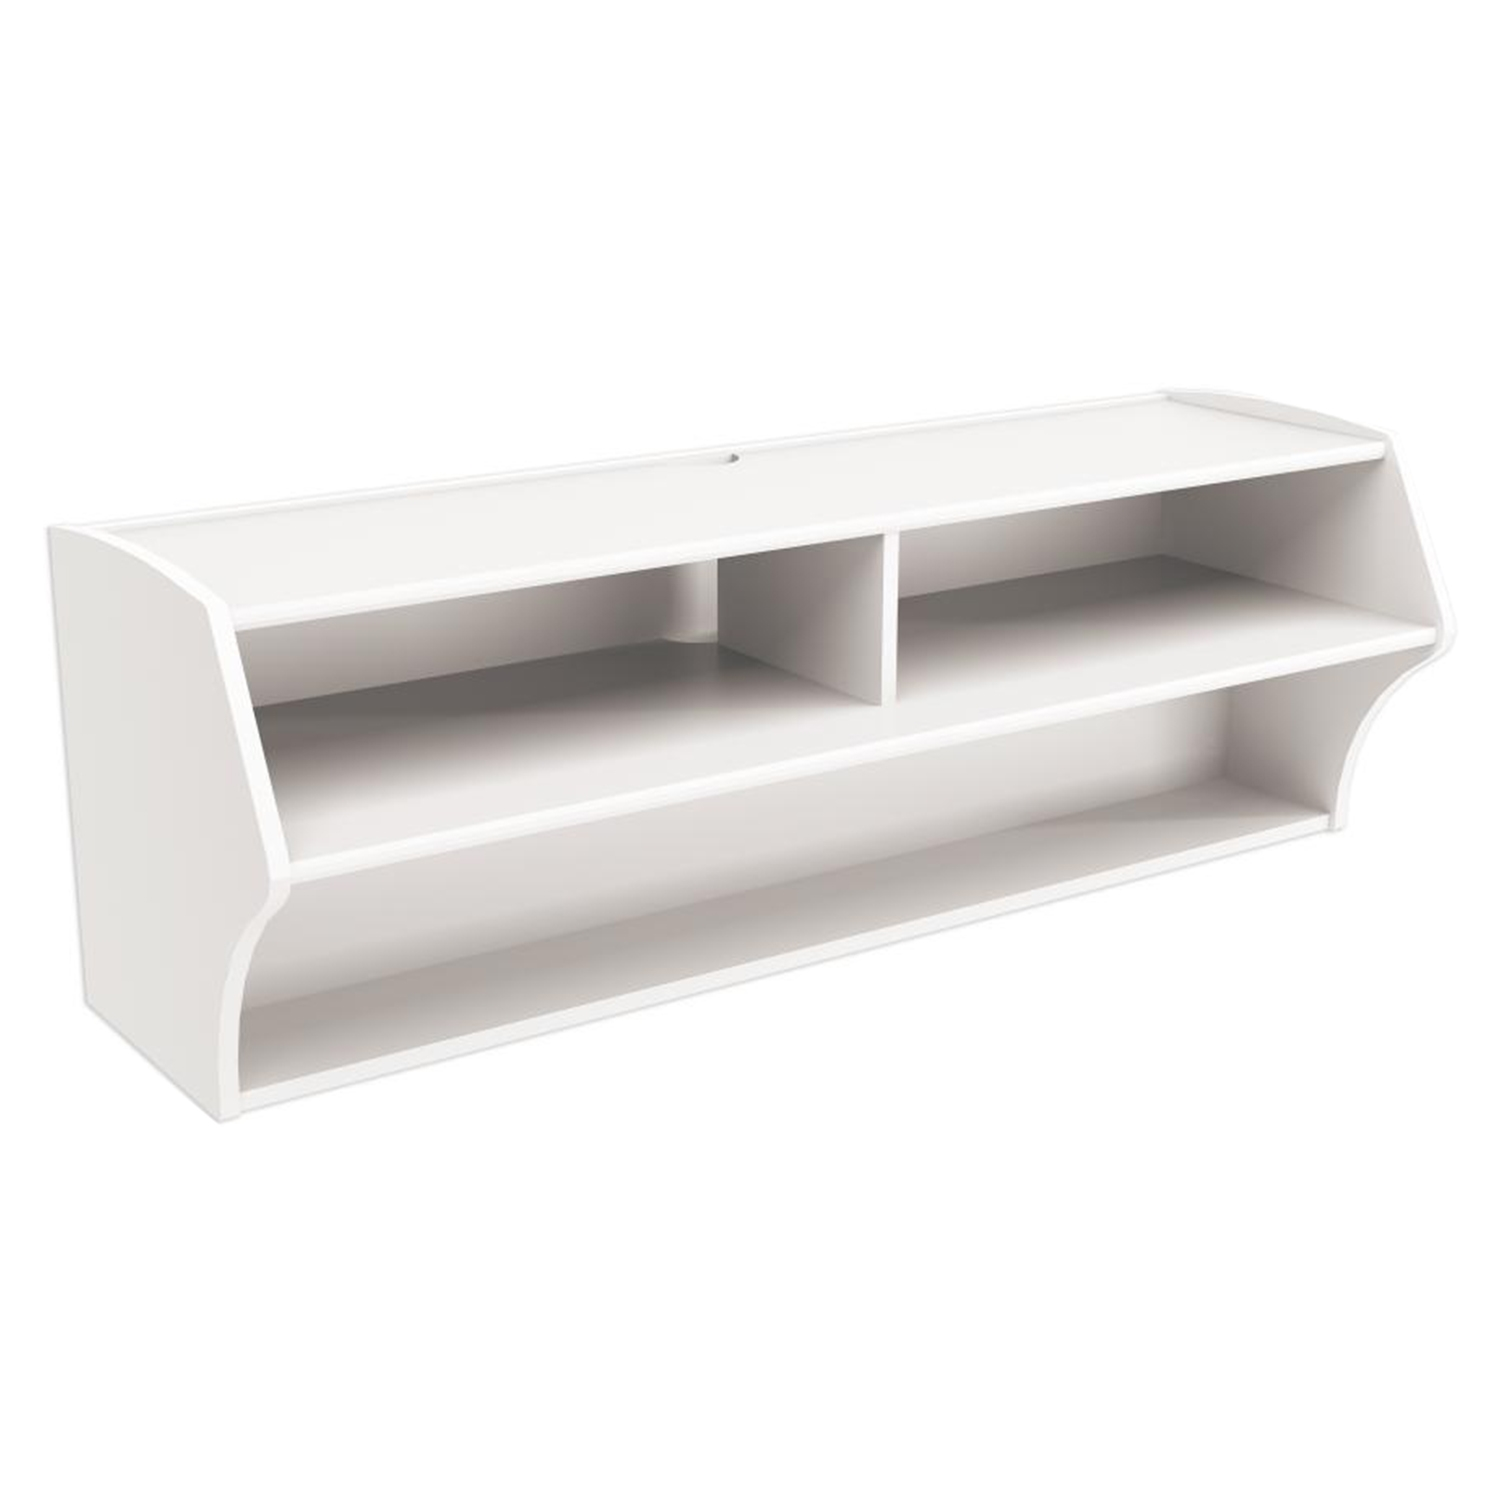 Altus Wall Mounted Audio Video Console - White